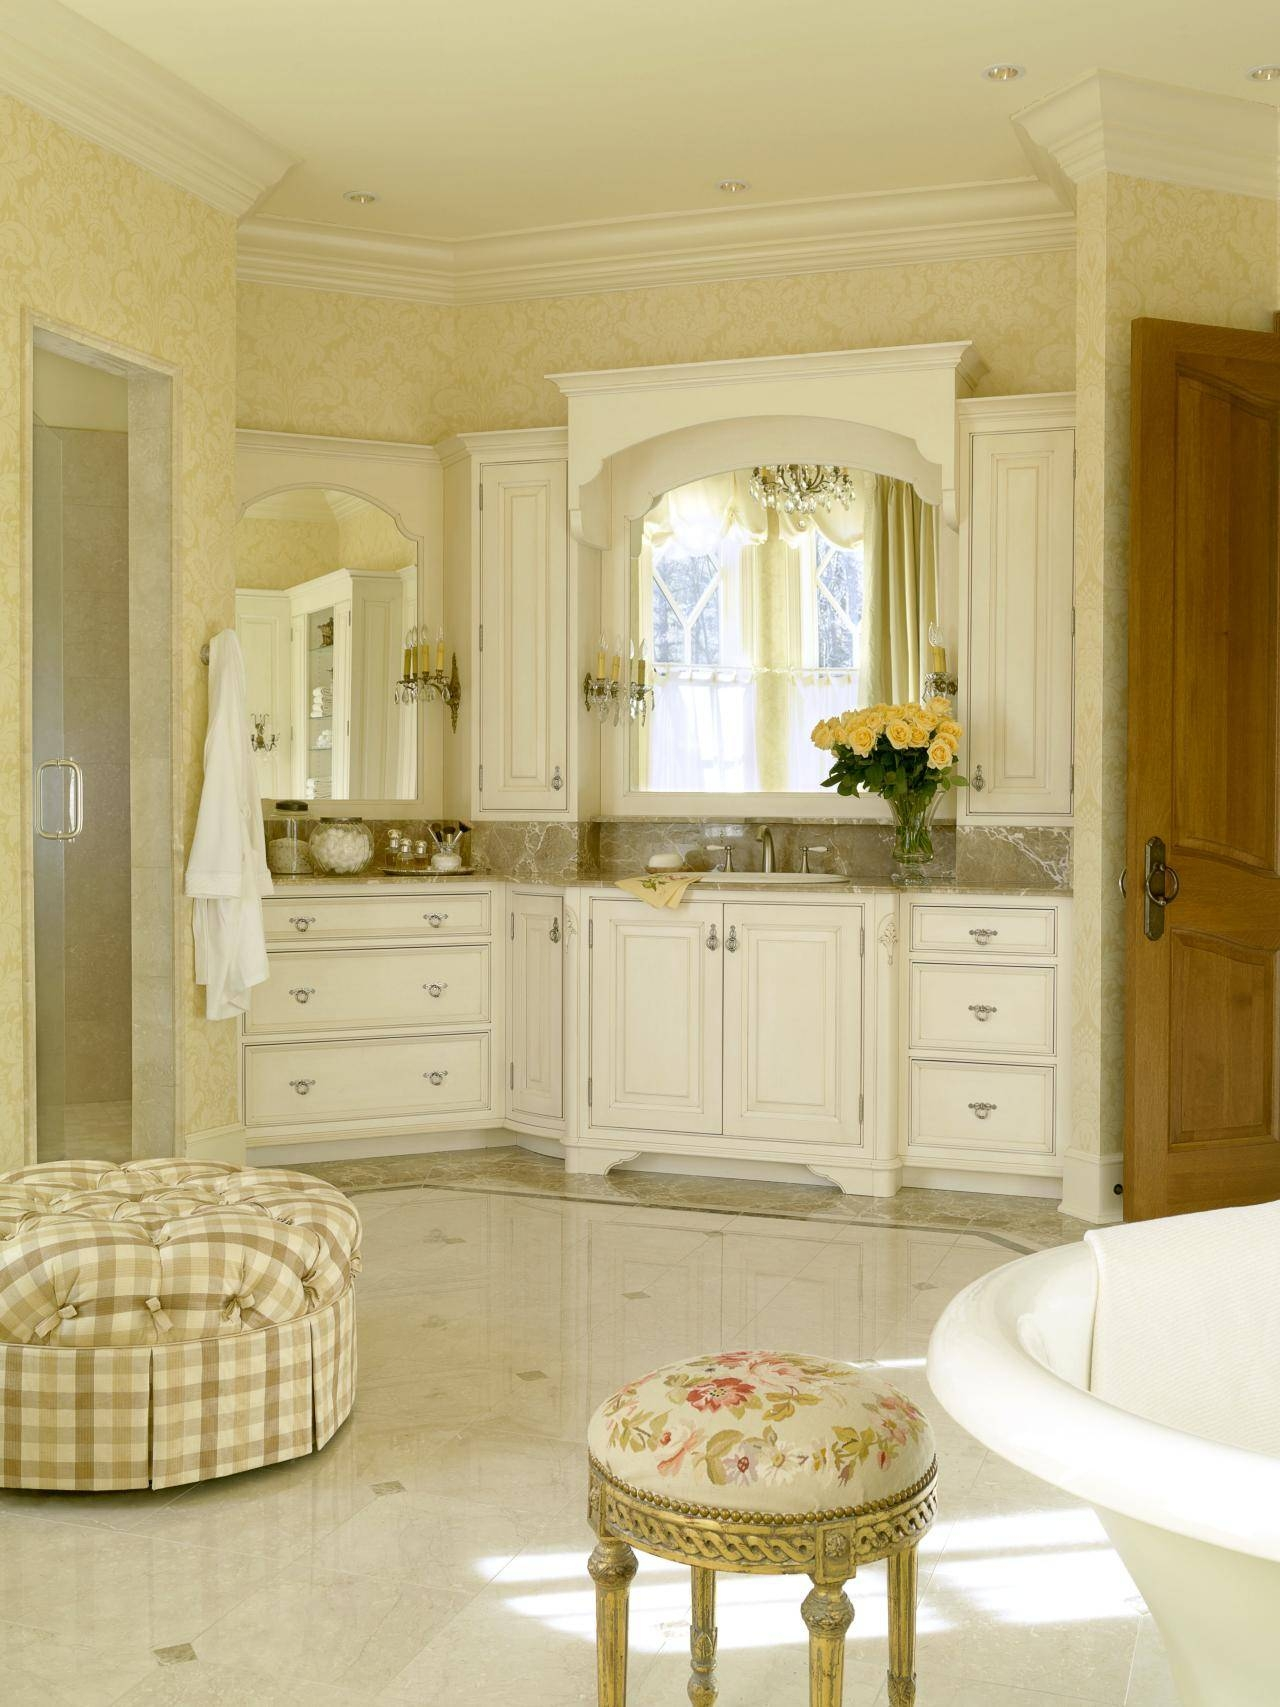 Old World French Bathroom Mirrors | Home throughout French Bathroom Mirrors (Image 14 of 15)